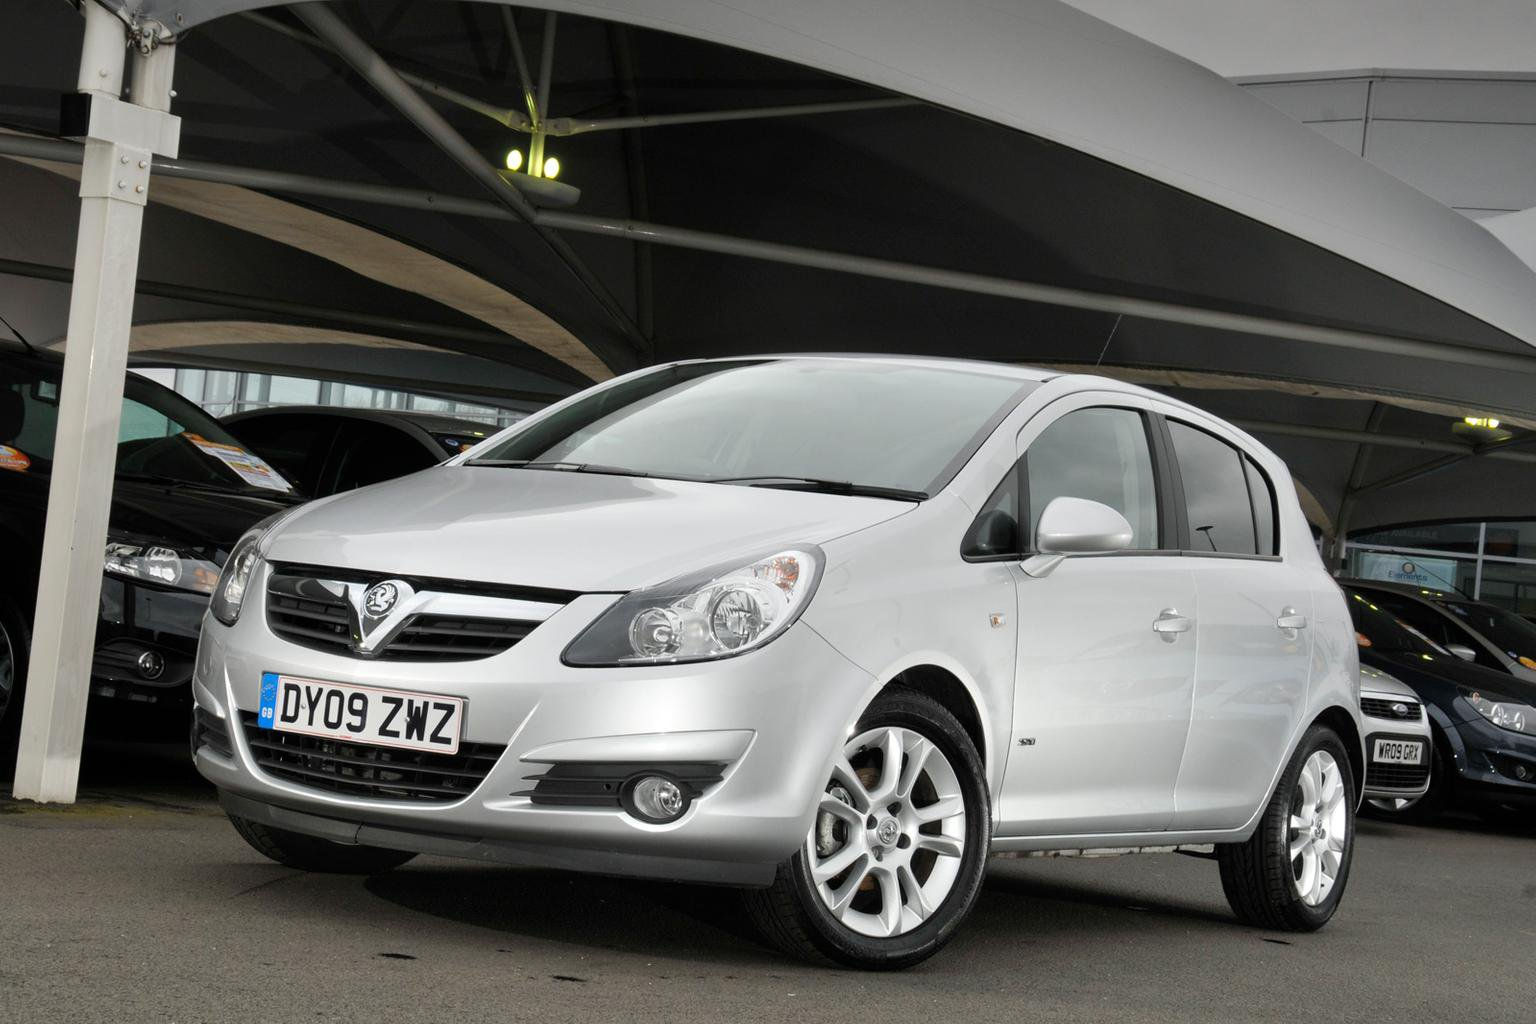 Used cars of the week: Vauxhall Corsas from less than 6000